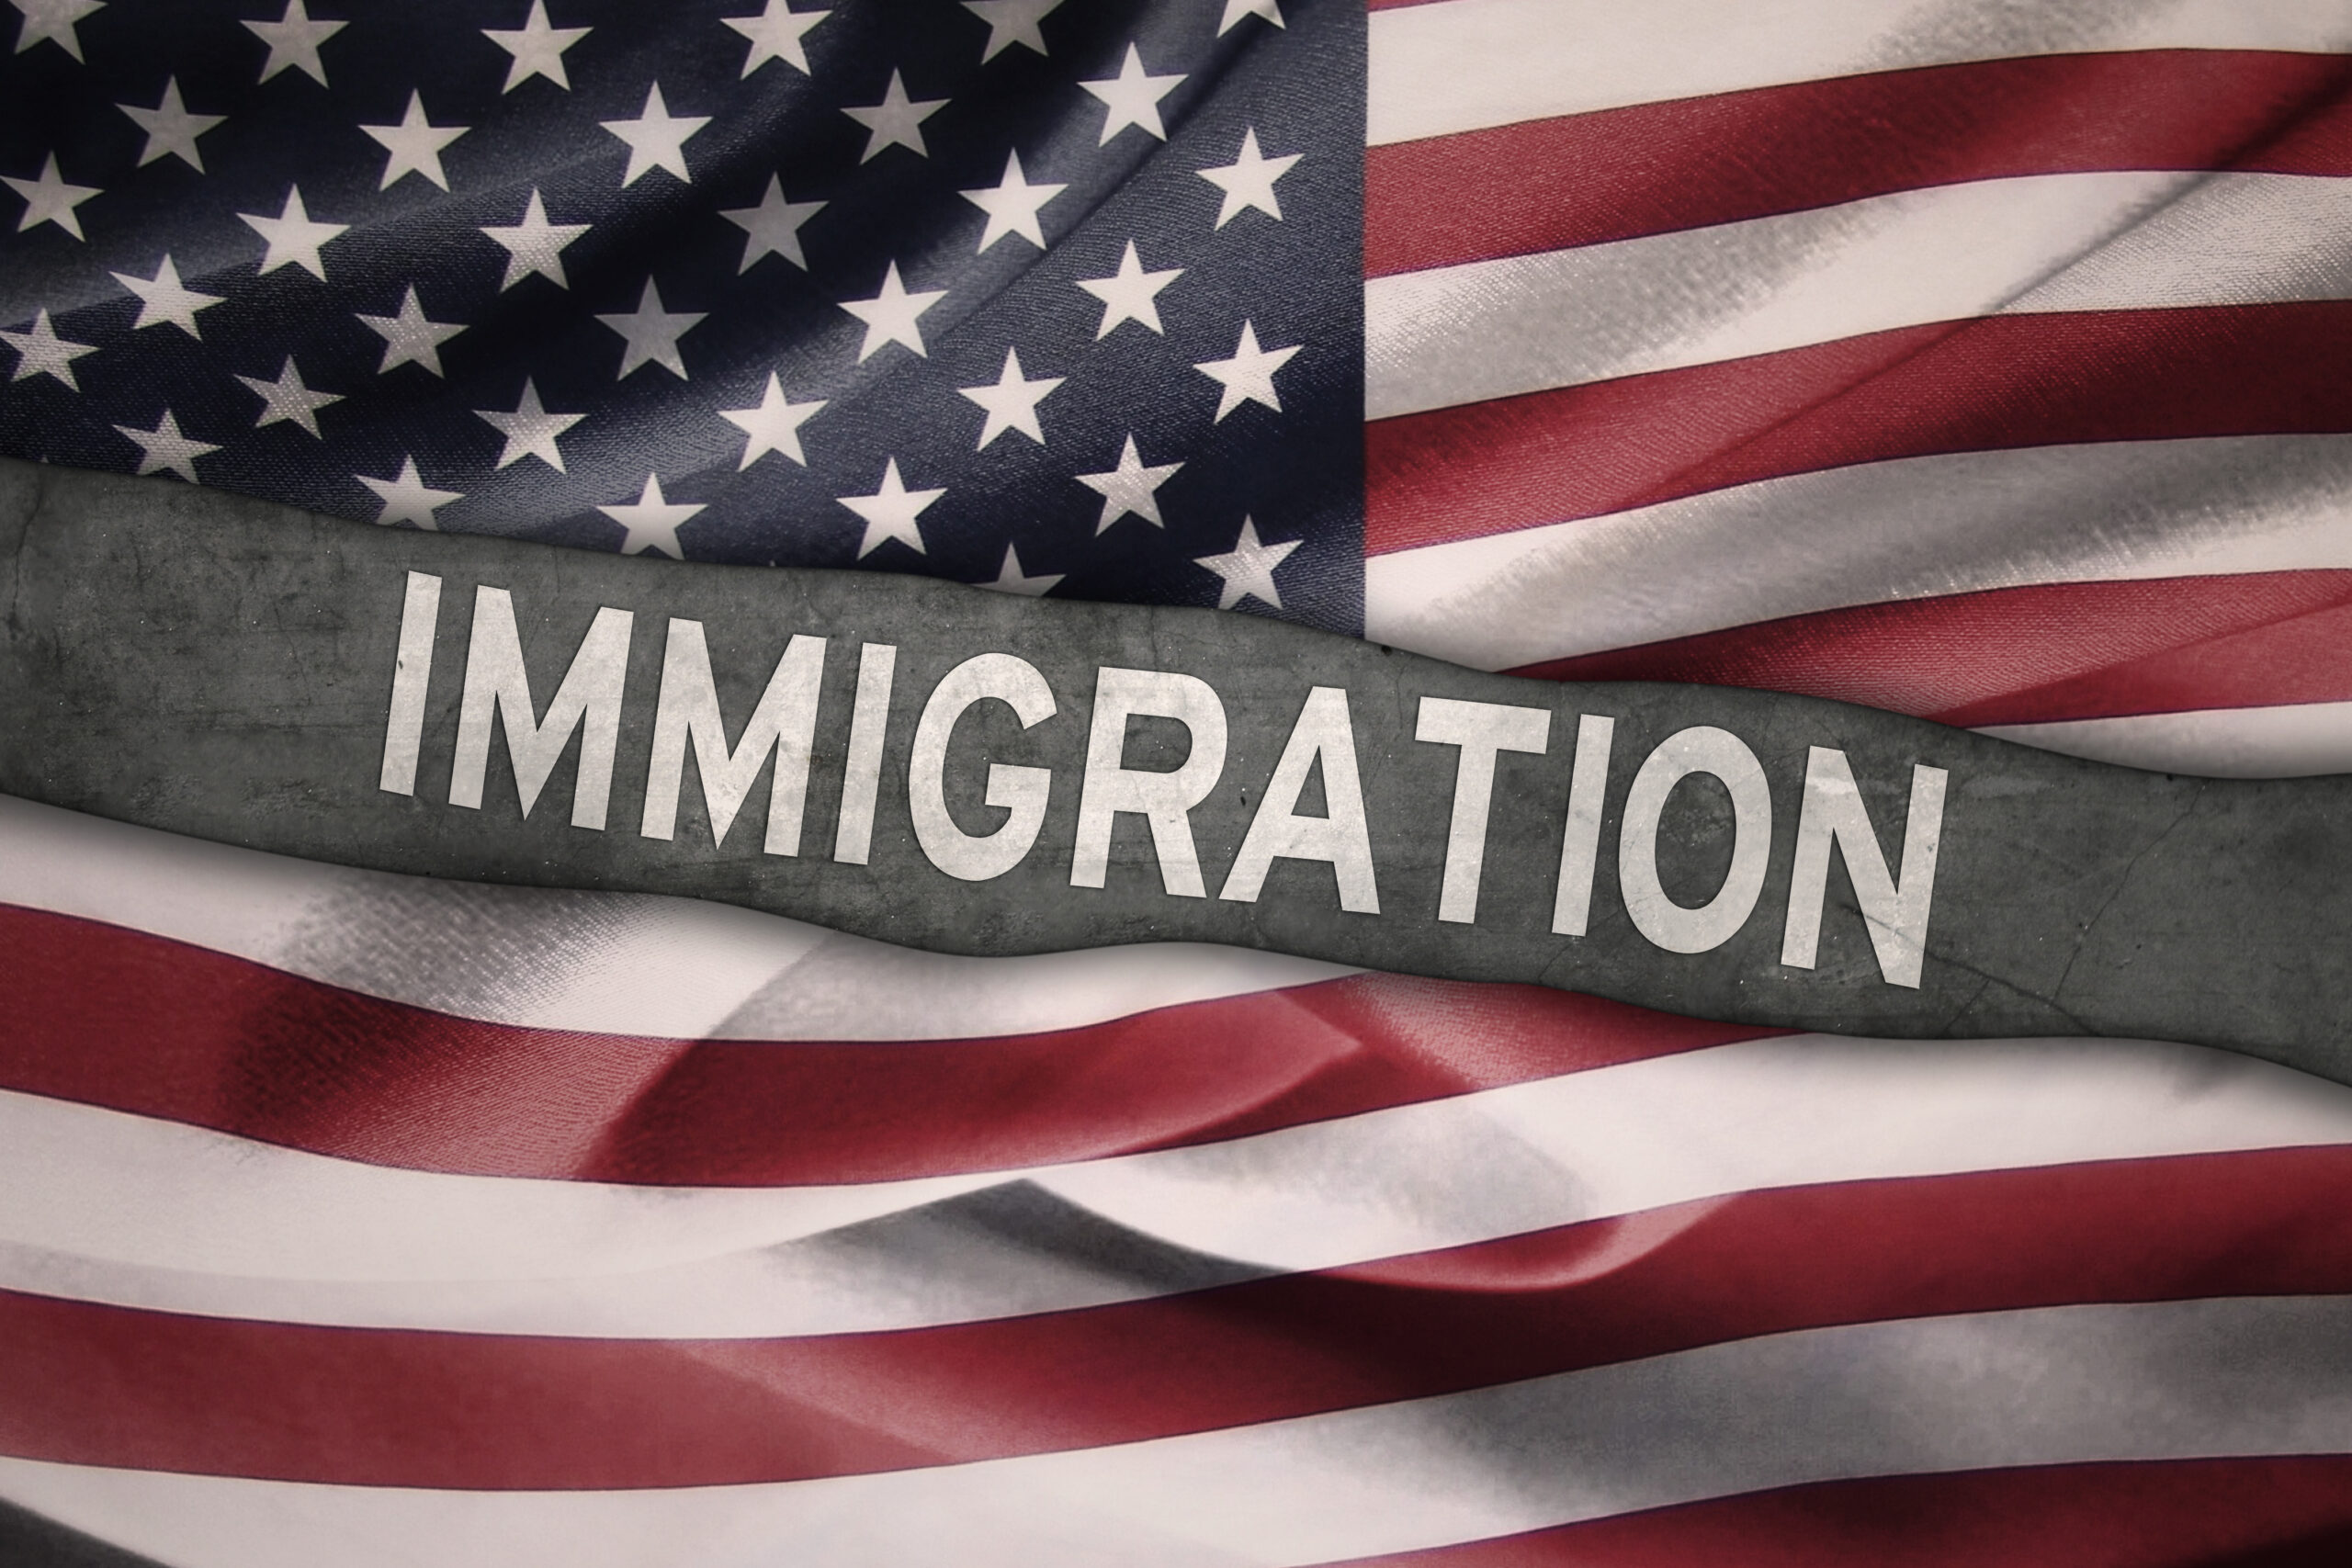 (Another) Illegal Immigration Blunder 👎